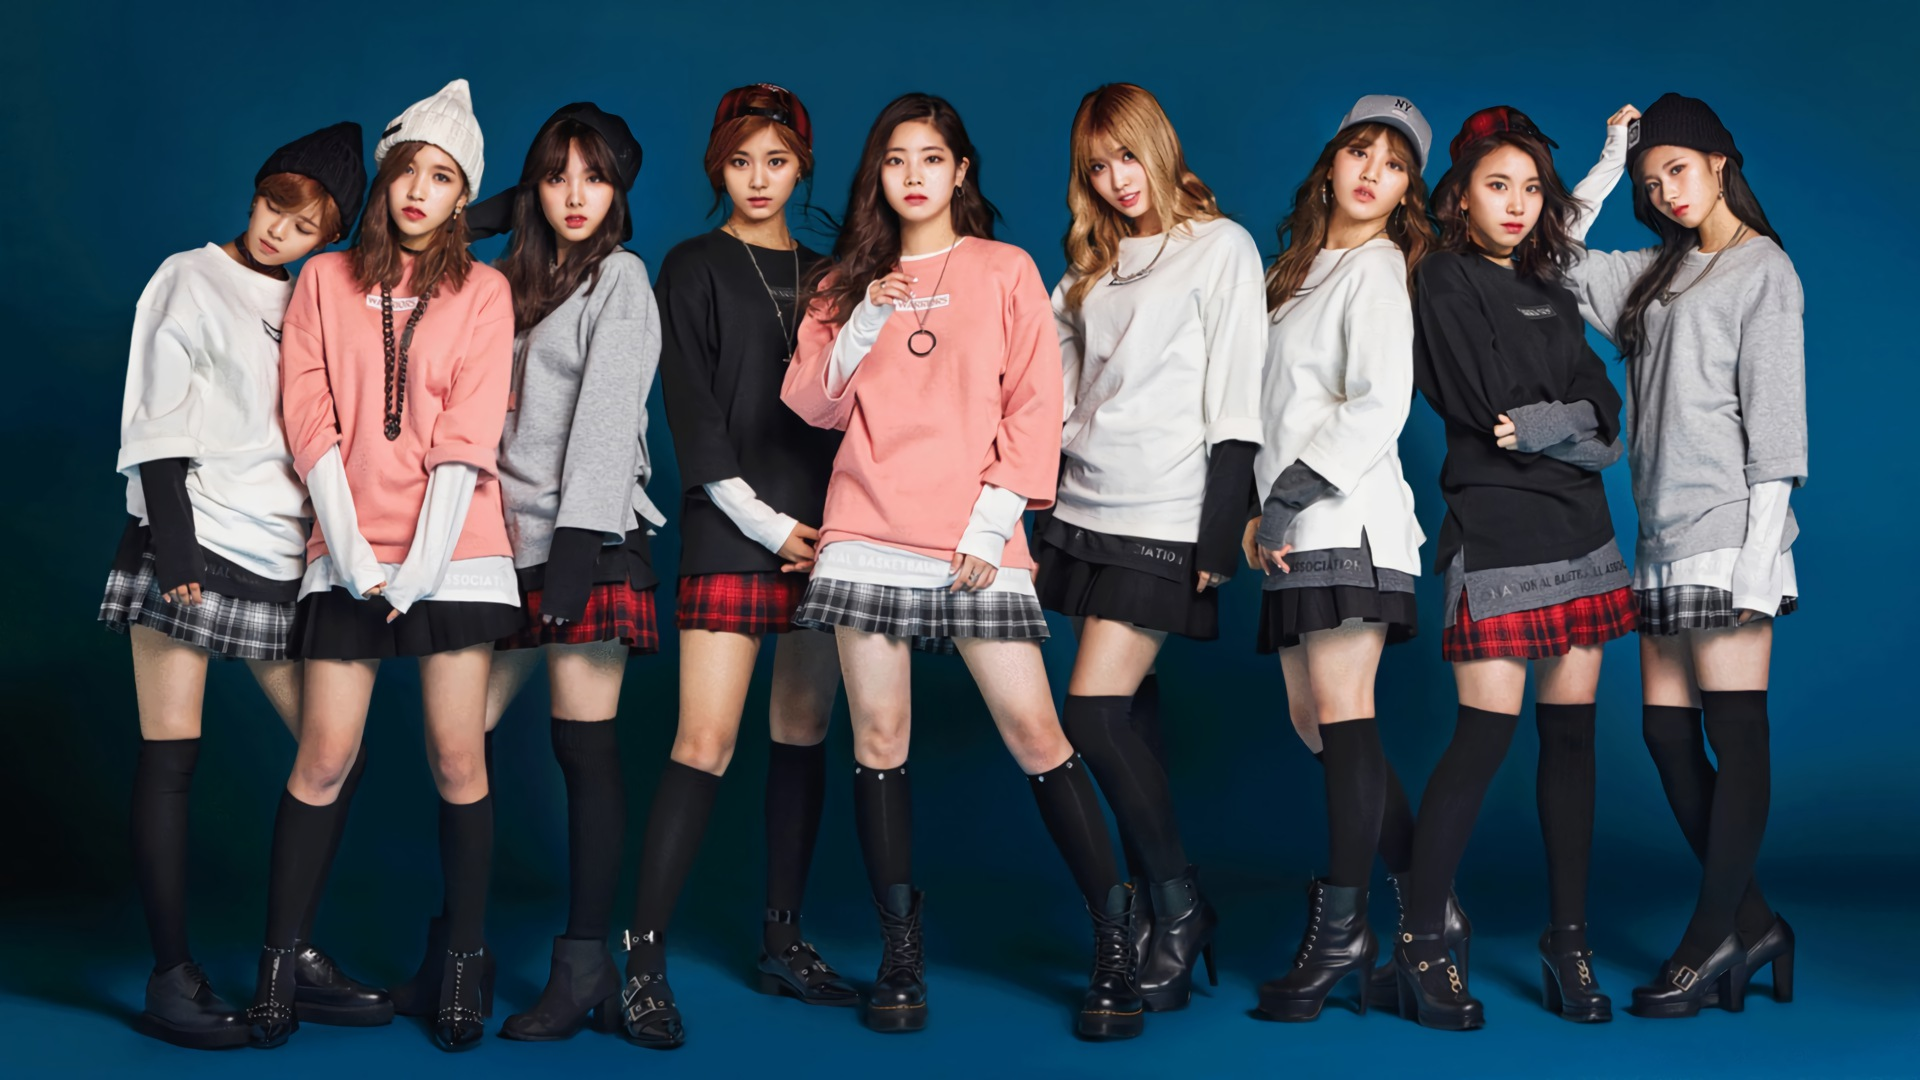 Twice Wallpaper 1920x1080 Posted By Michelle Sellers